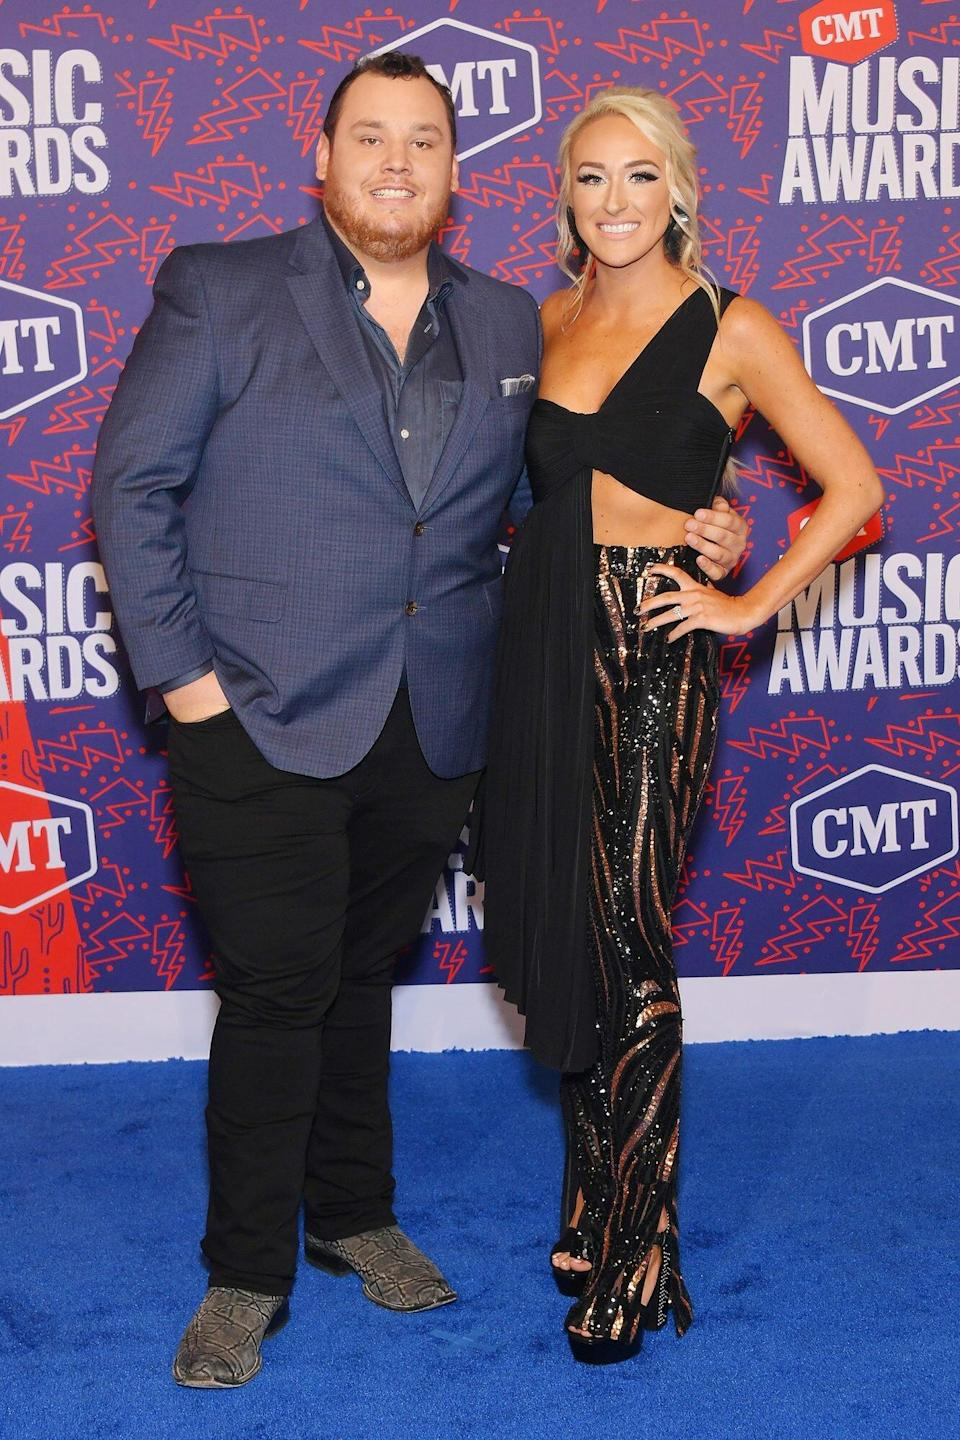 Luke Combs' Wedding Rehearsal Dinner Featured a 'Very Delicious' Beer Can-Shaped Cake